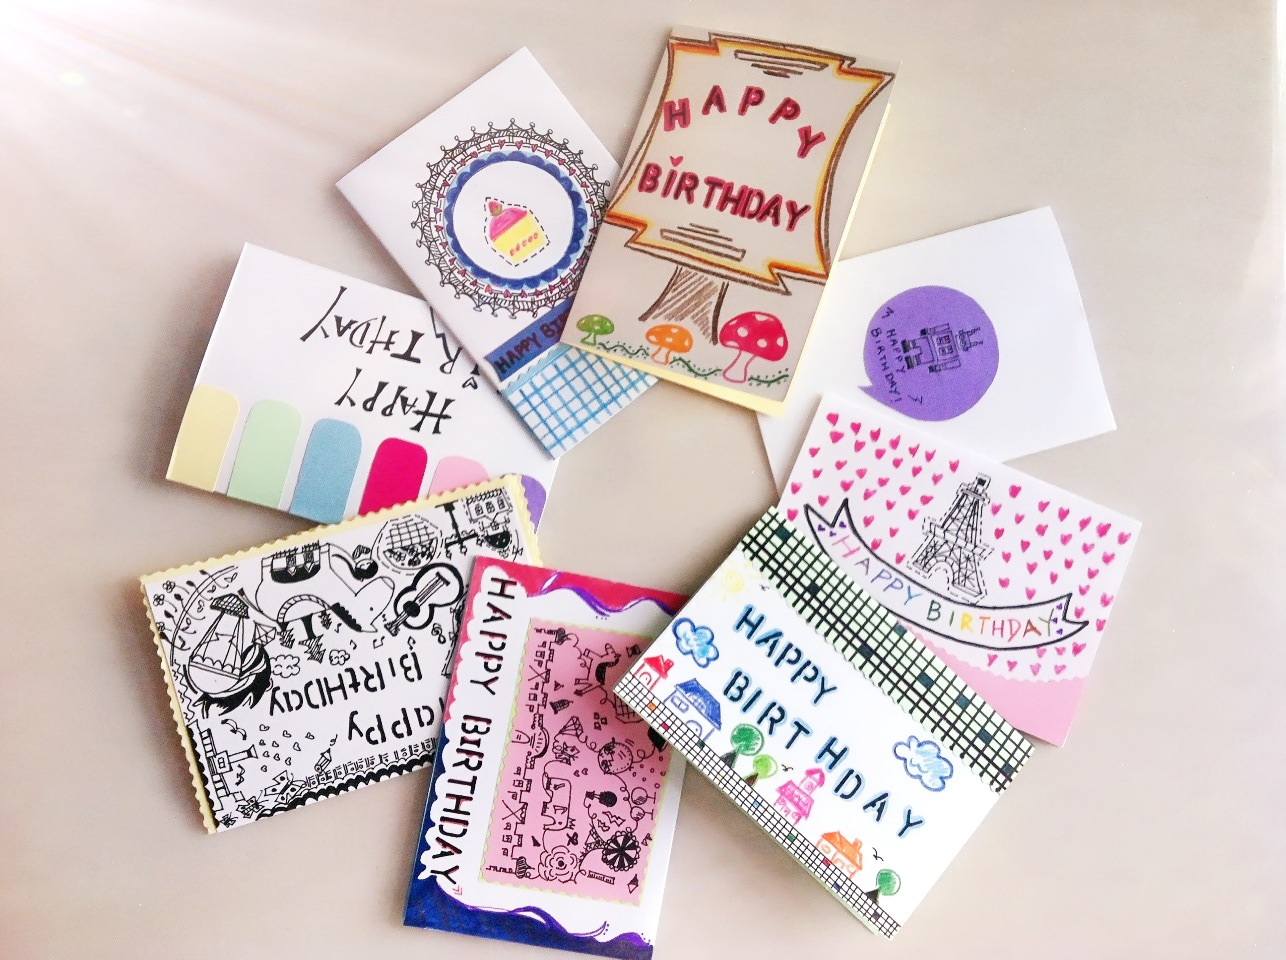 DRAWCARD Birthday Cards Collection from DRAWCARDS – Birthday Card Collection